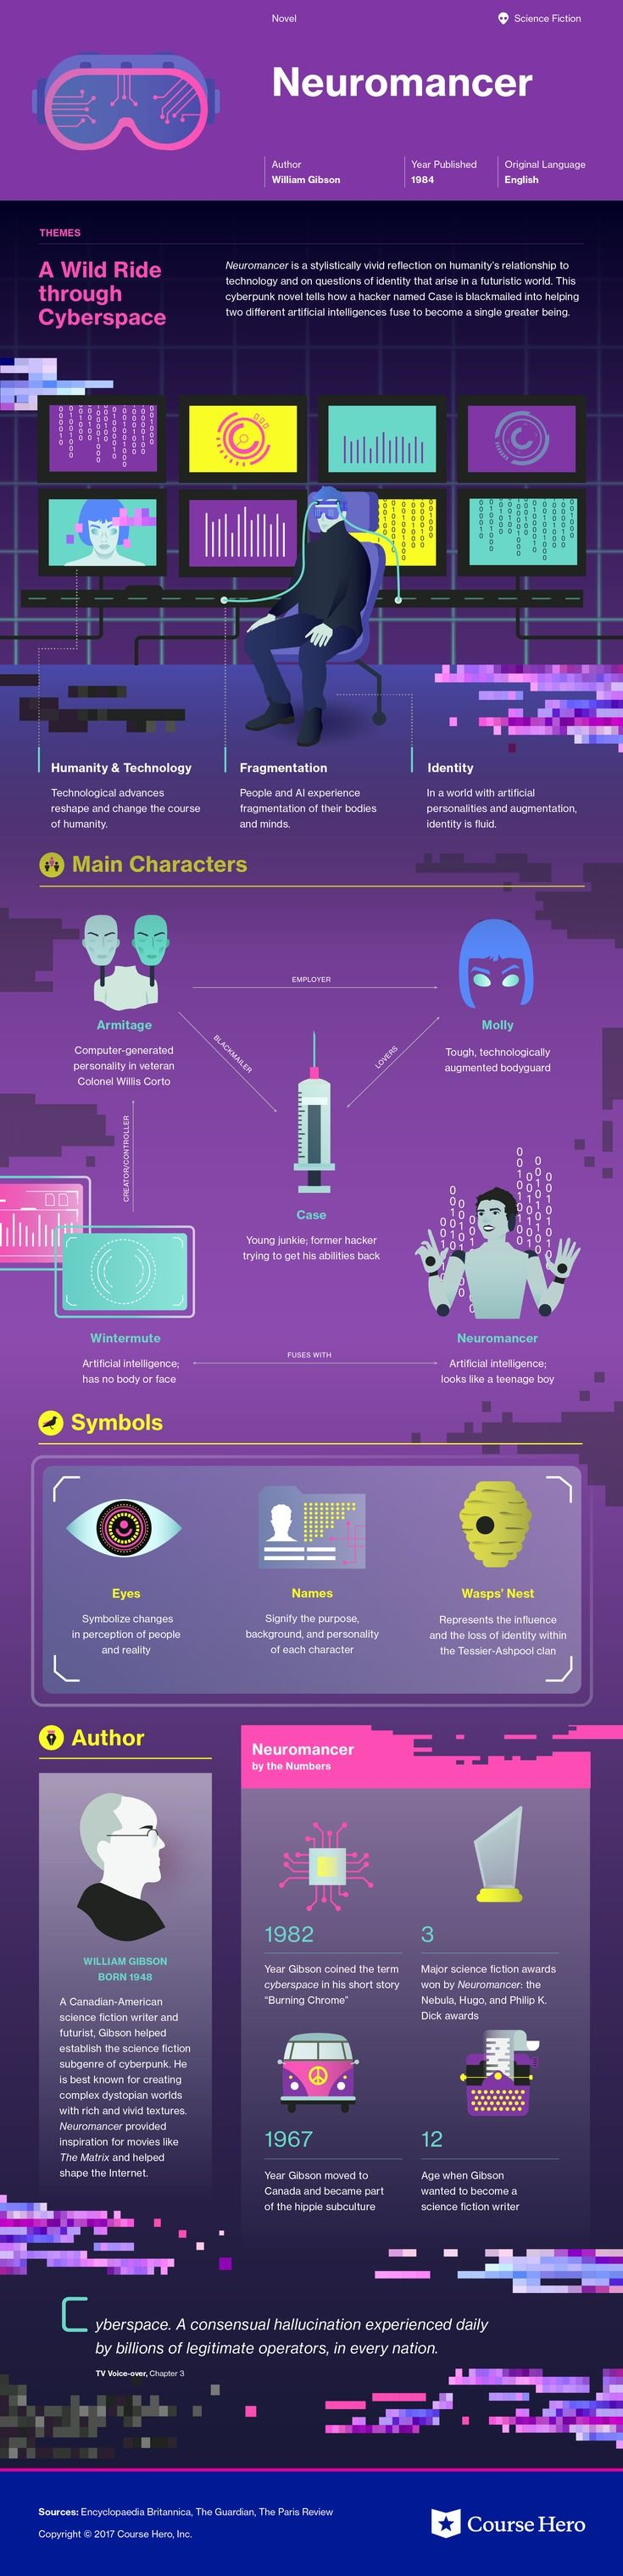 This @CourseHero infographic on Neuromancer is both visually stunning and informative!